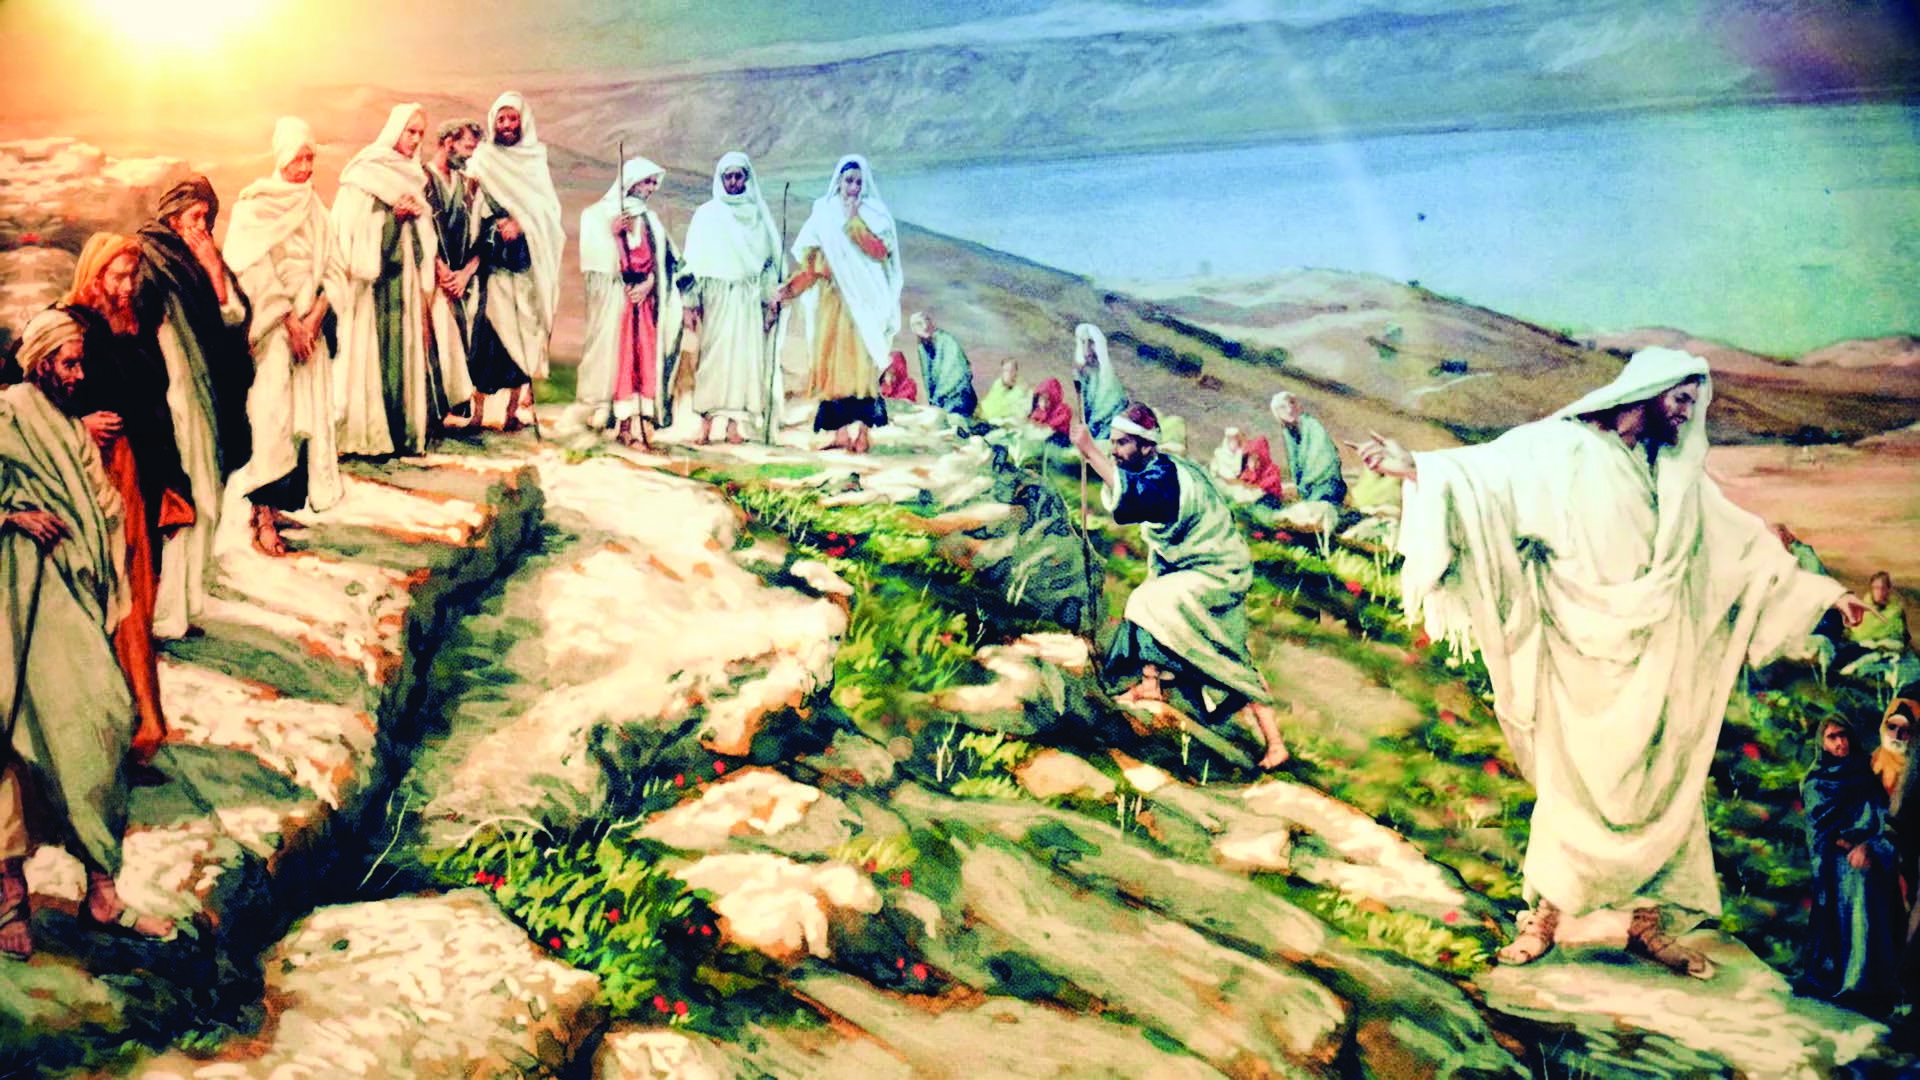 a history of jesuss disciples Early history the christian church (disciples of christ) grew out of two movements seeking christian unity that sprang up almost simultaneously in western pennsylvania and kentucky - movements that were backlashes against the rigid denominationalism of the early 1800s.